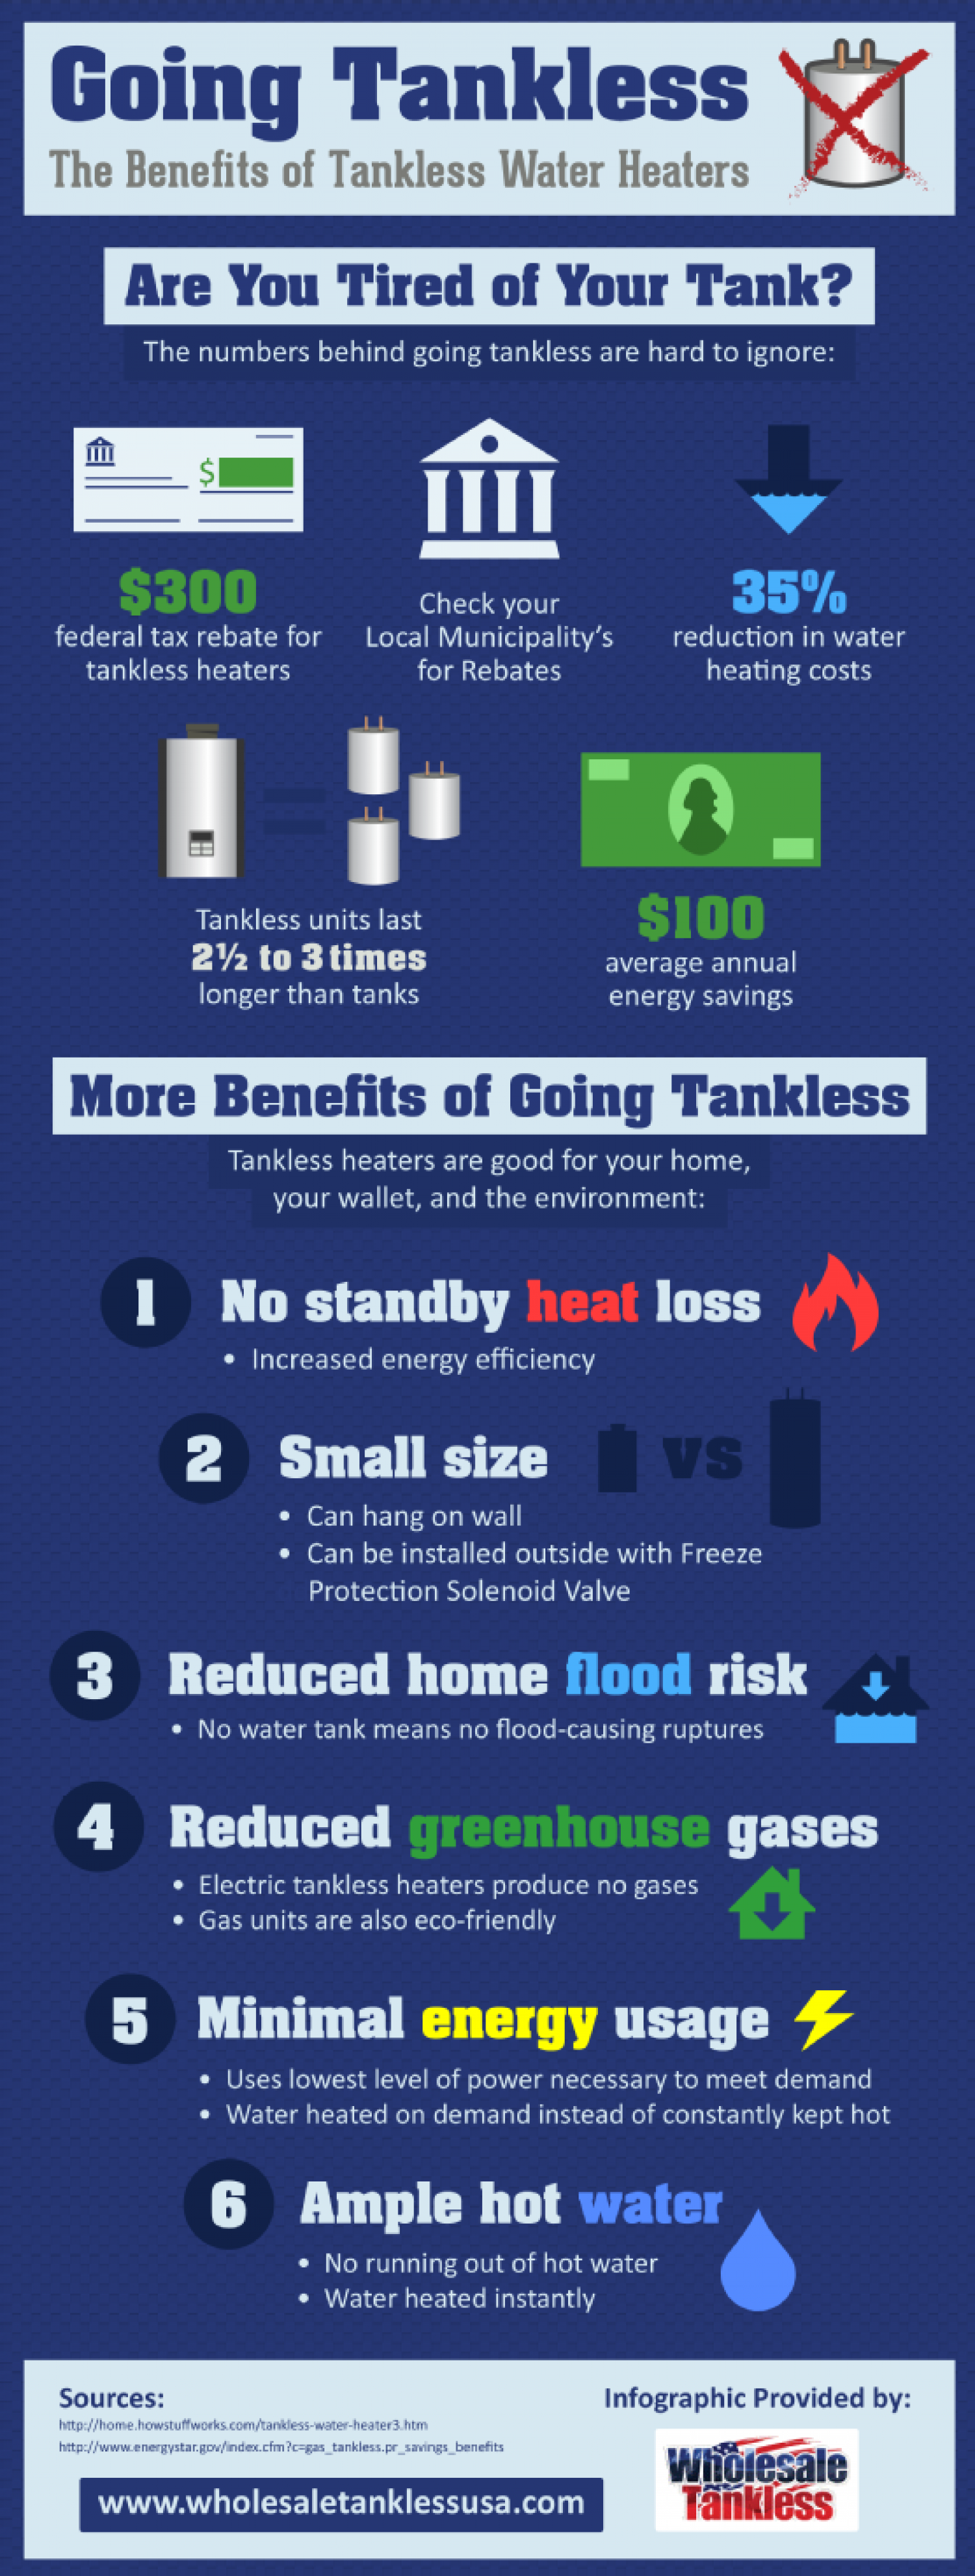 Going Tankless: The Benefits of Tankless Water Heaters Infographic